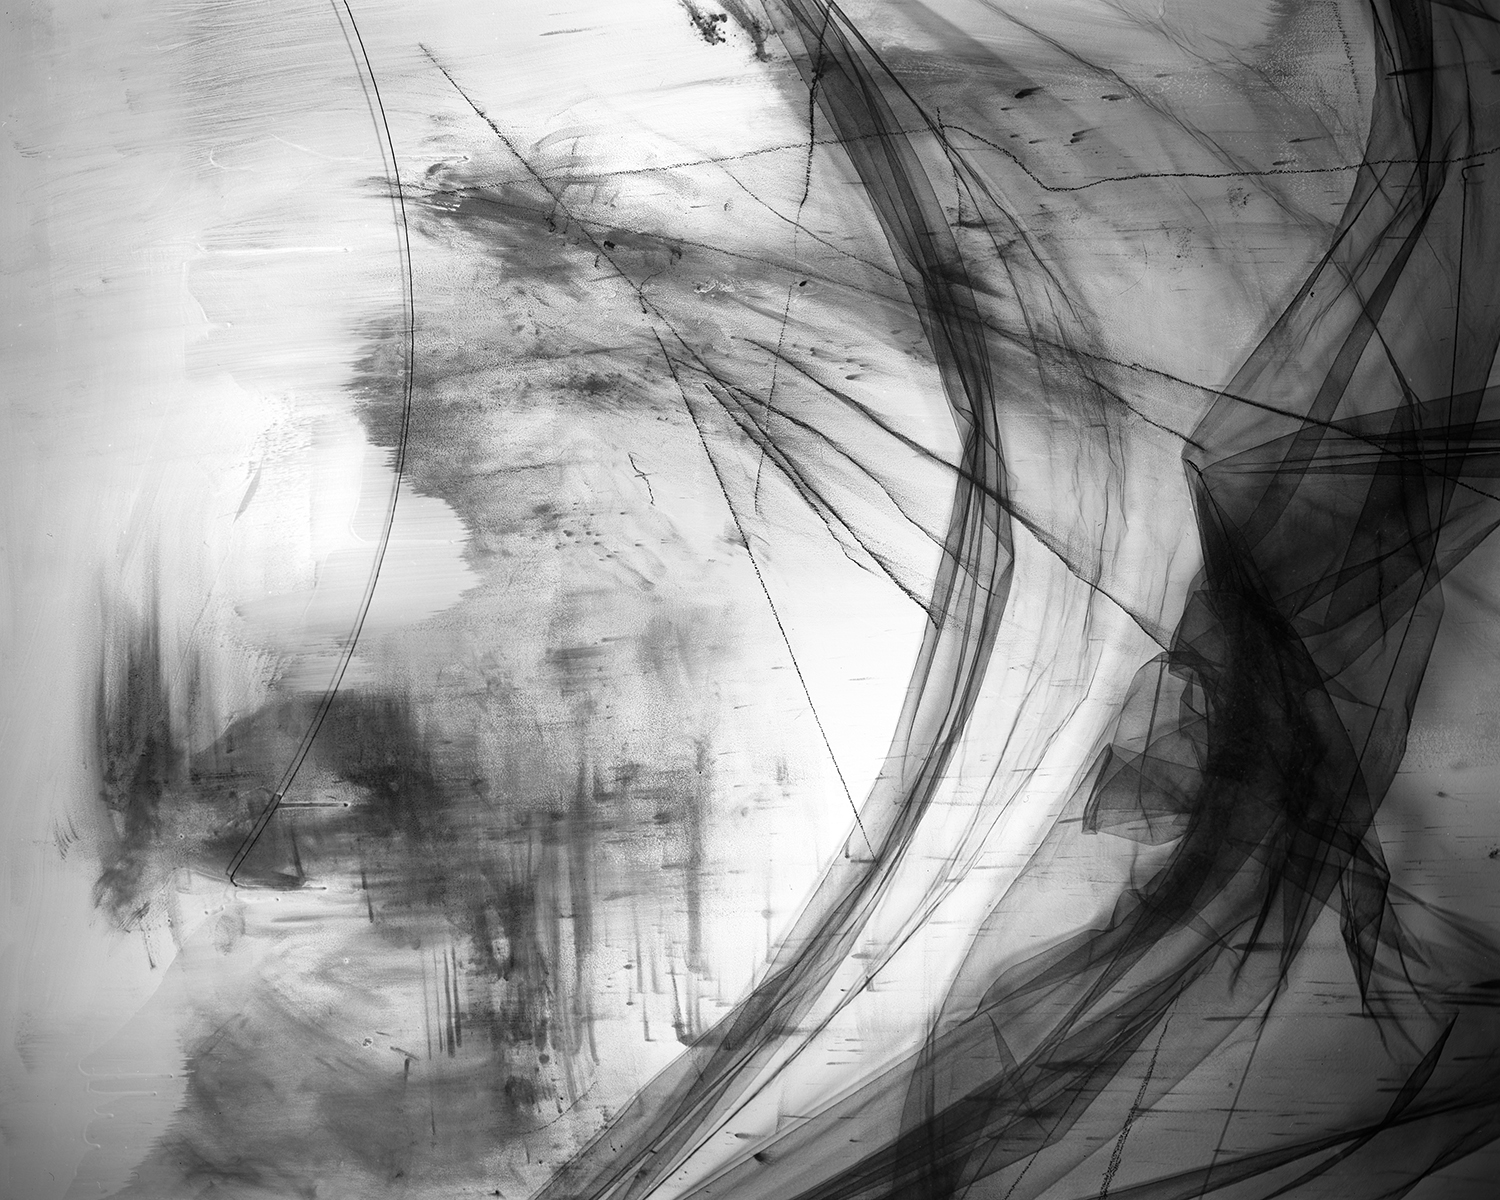 """Wind Blurred, 2017. From the series """"Pitch."""" © Lauren Semivan"""